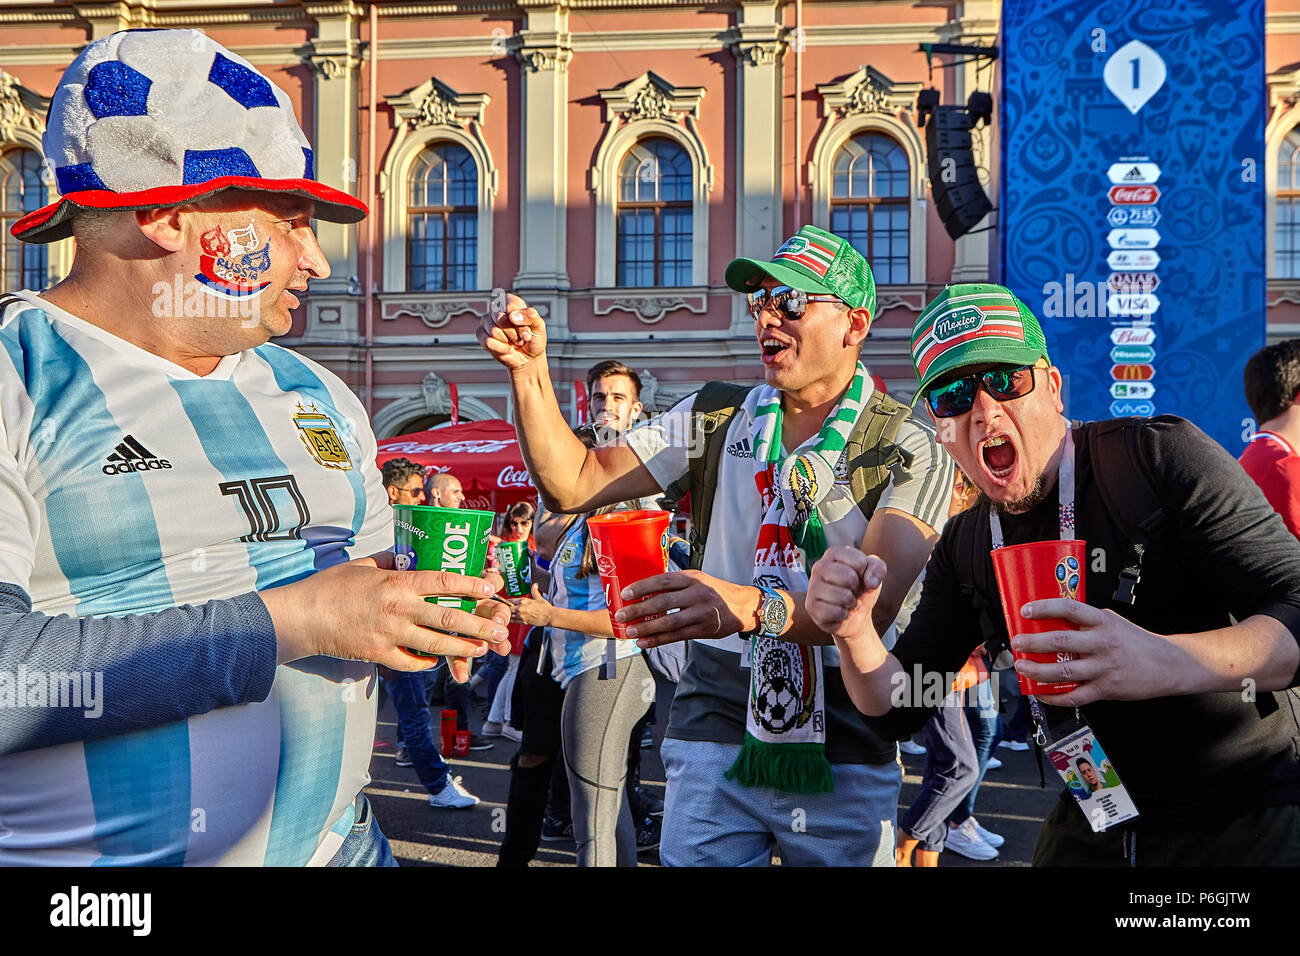 Saint petersburg russia june 25 2018 russian and mexican saint petersburg russia june 25 2018 russian and mexican football fans they greet each other in fanzone during world cup football m4hsunfo